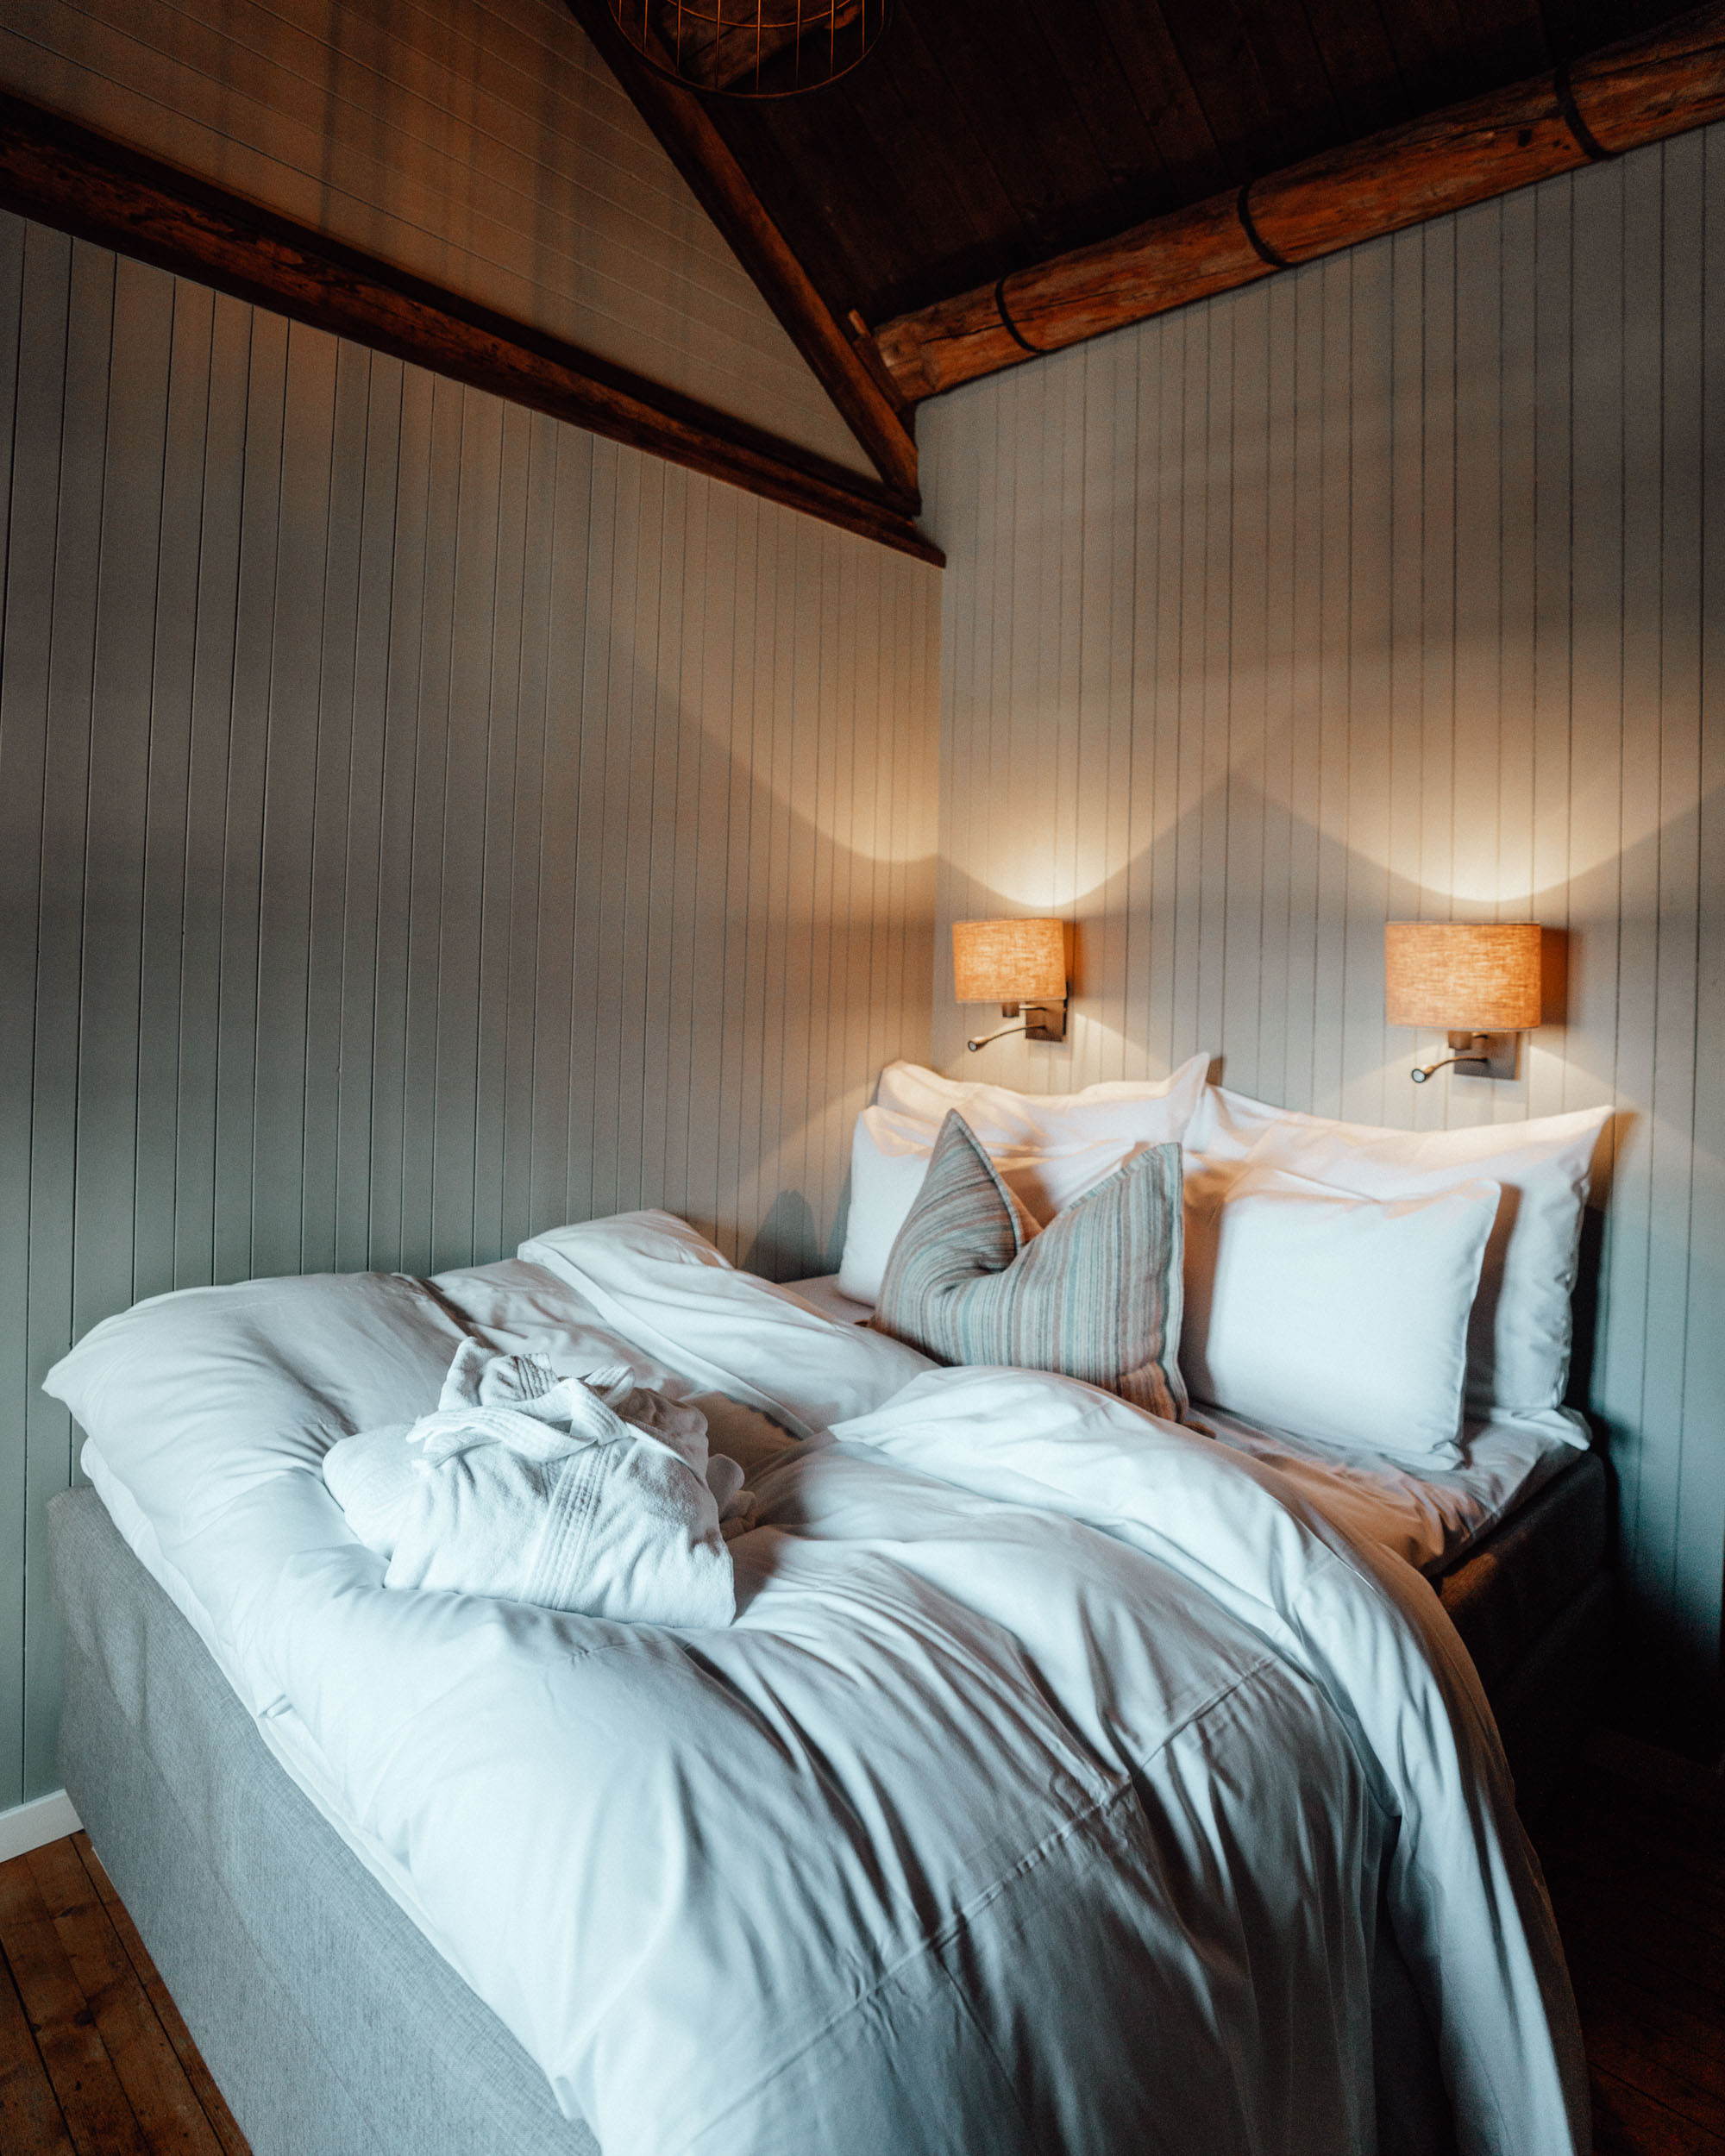 Bedroom of Hotel in Lofoten Norway Nusfjord Arctic Resort Traditional Fishermen Red Cabin with a Fjord View - Find Us Lost